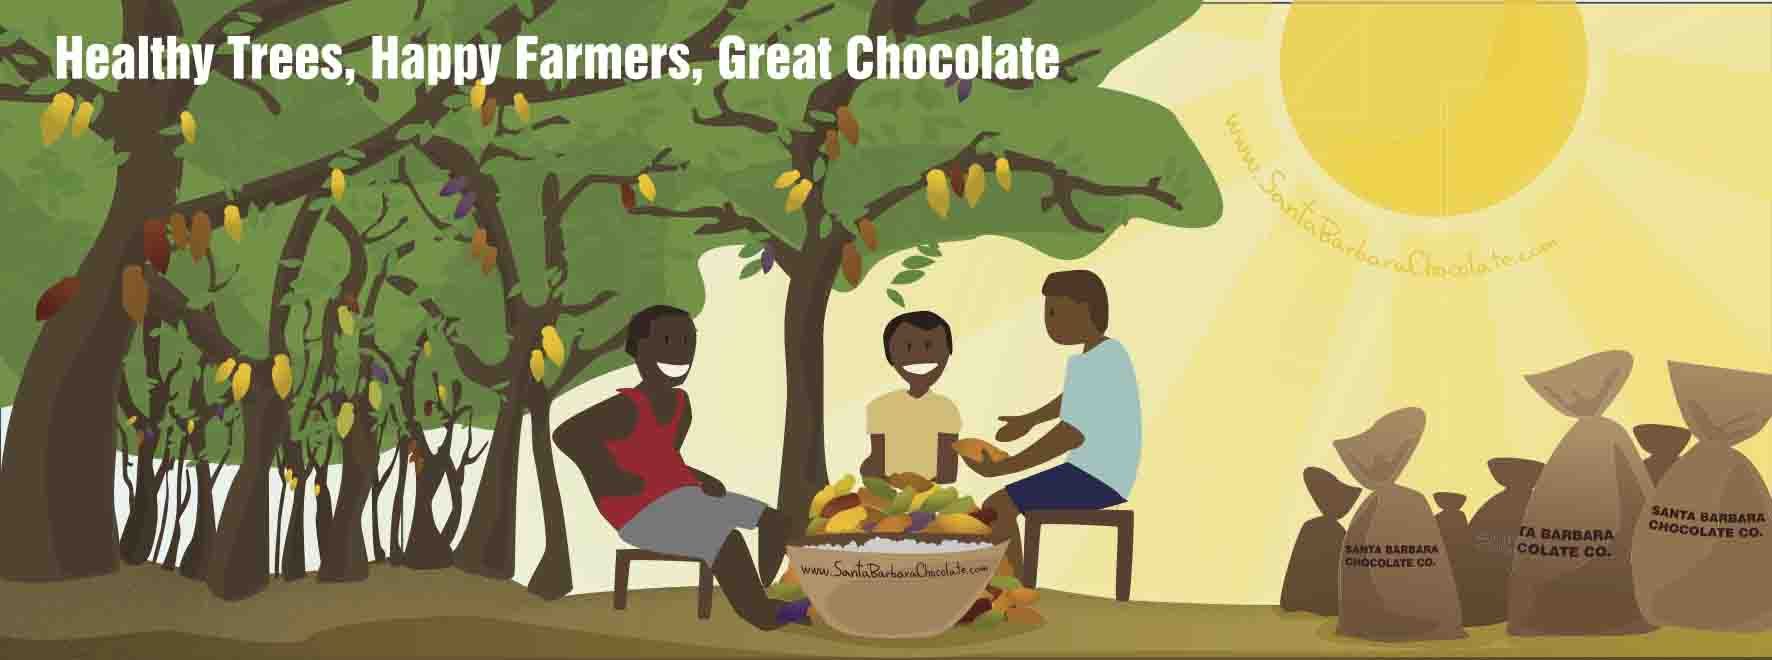 healthy-trees-happy-farmers-great-chocolate.jpg